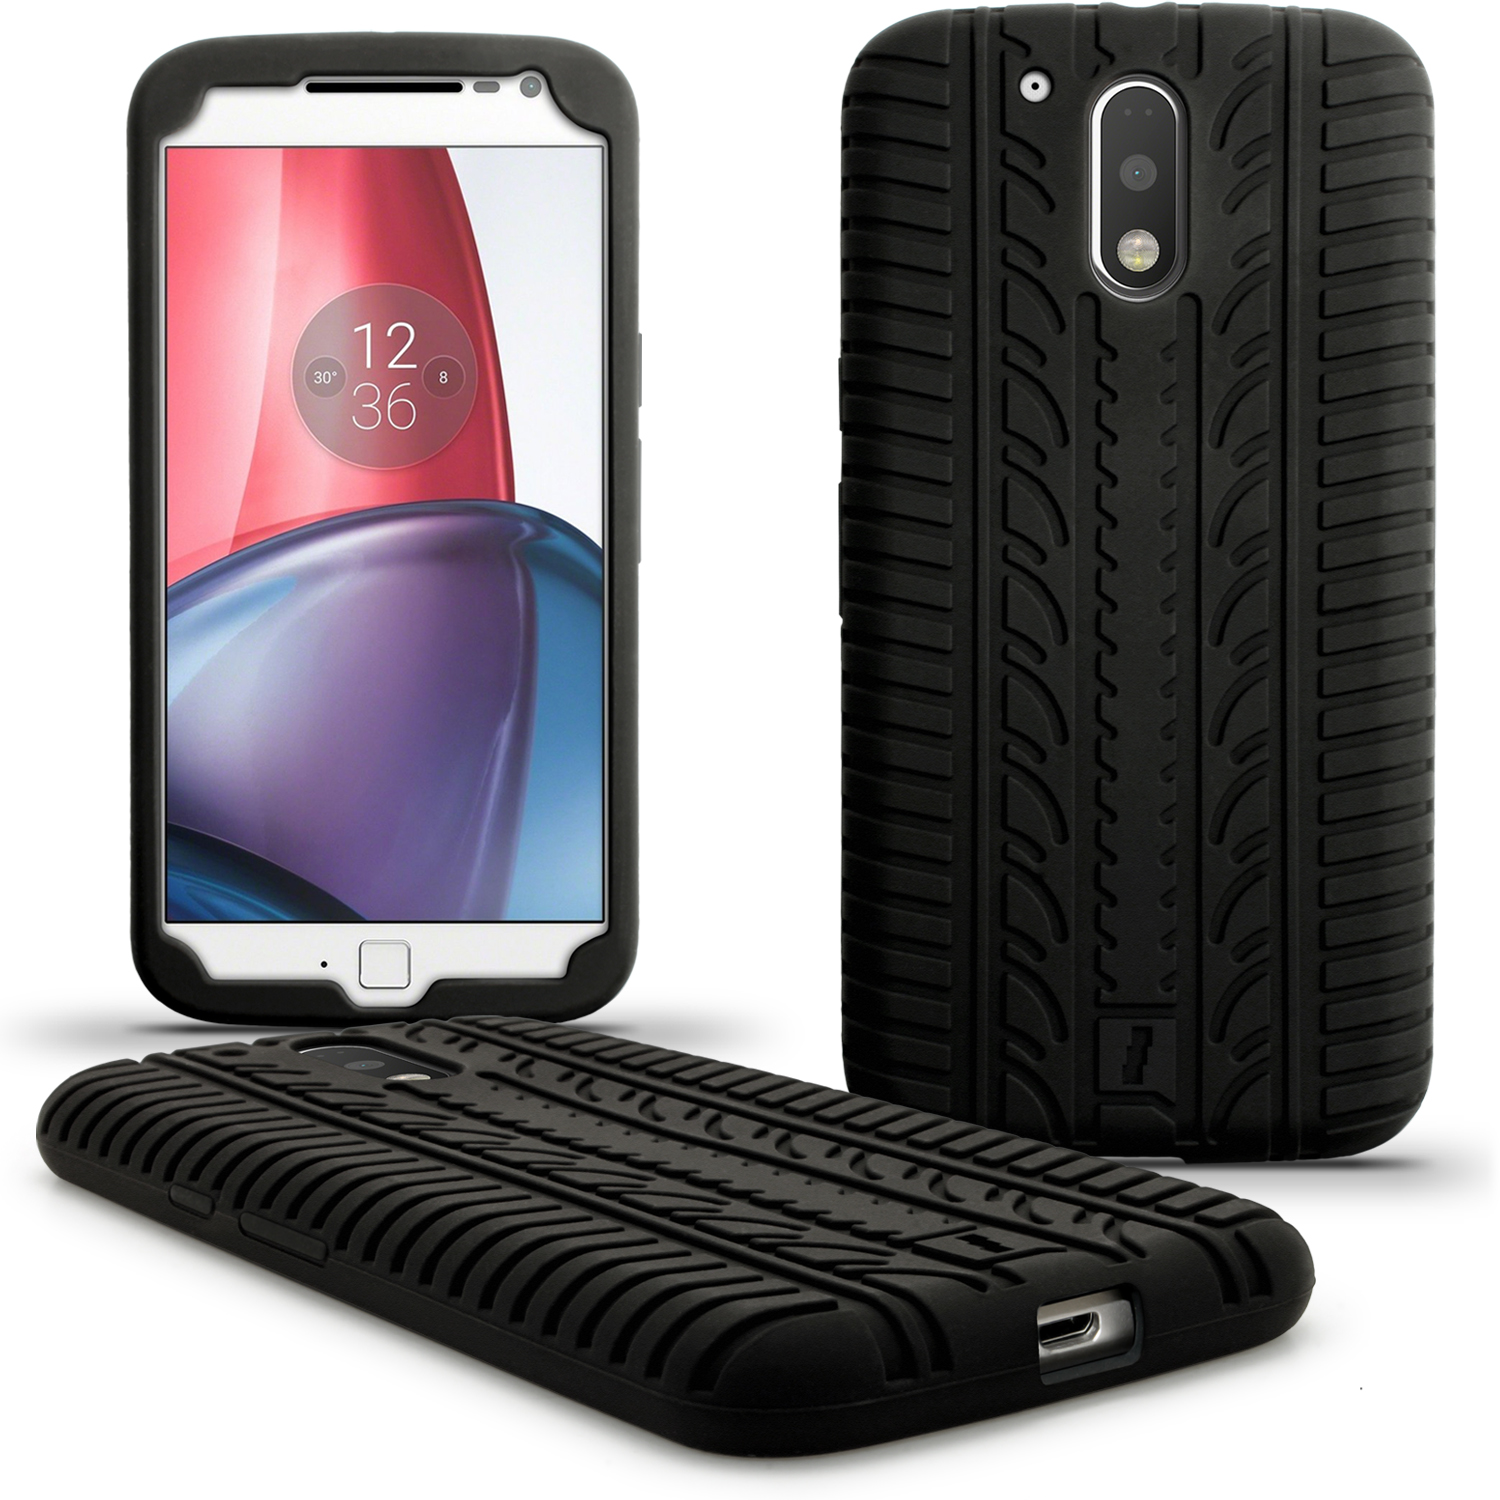 lowest price 22661 6c4d6 Details about Black Tyre Silicone Gel Skin Case for Motorola Moto G 4 Gen  2016 & G4 Plus Cover